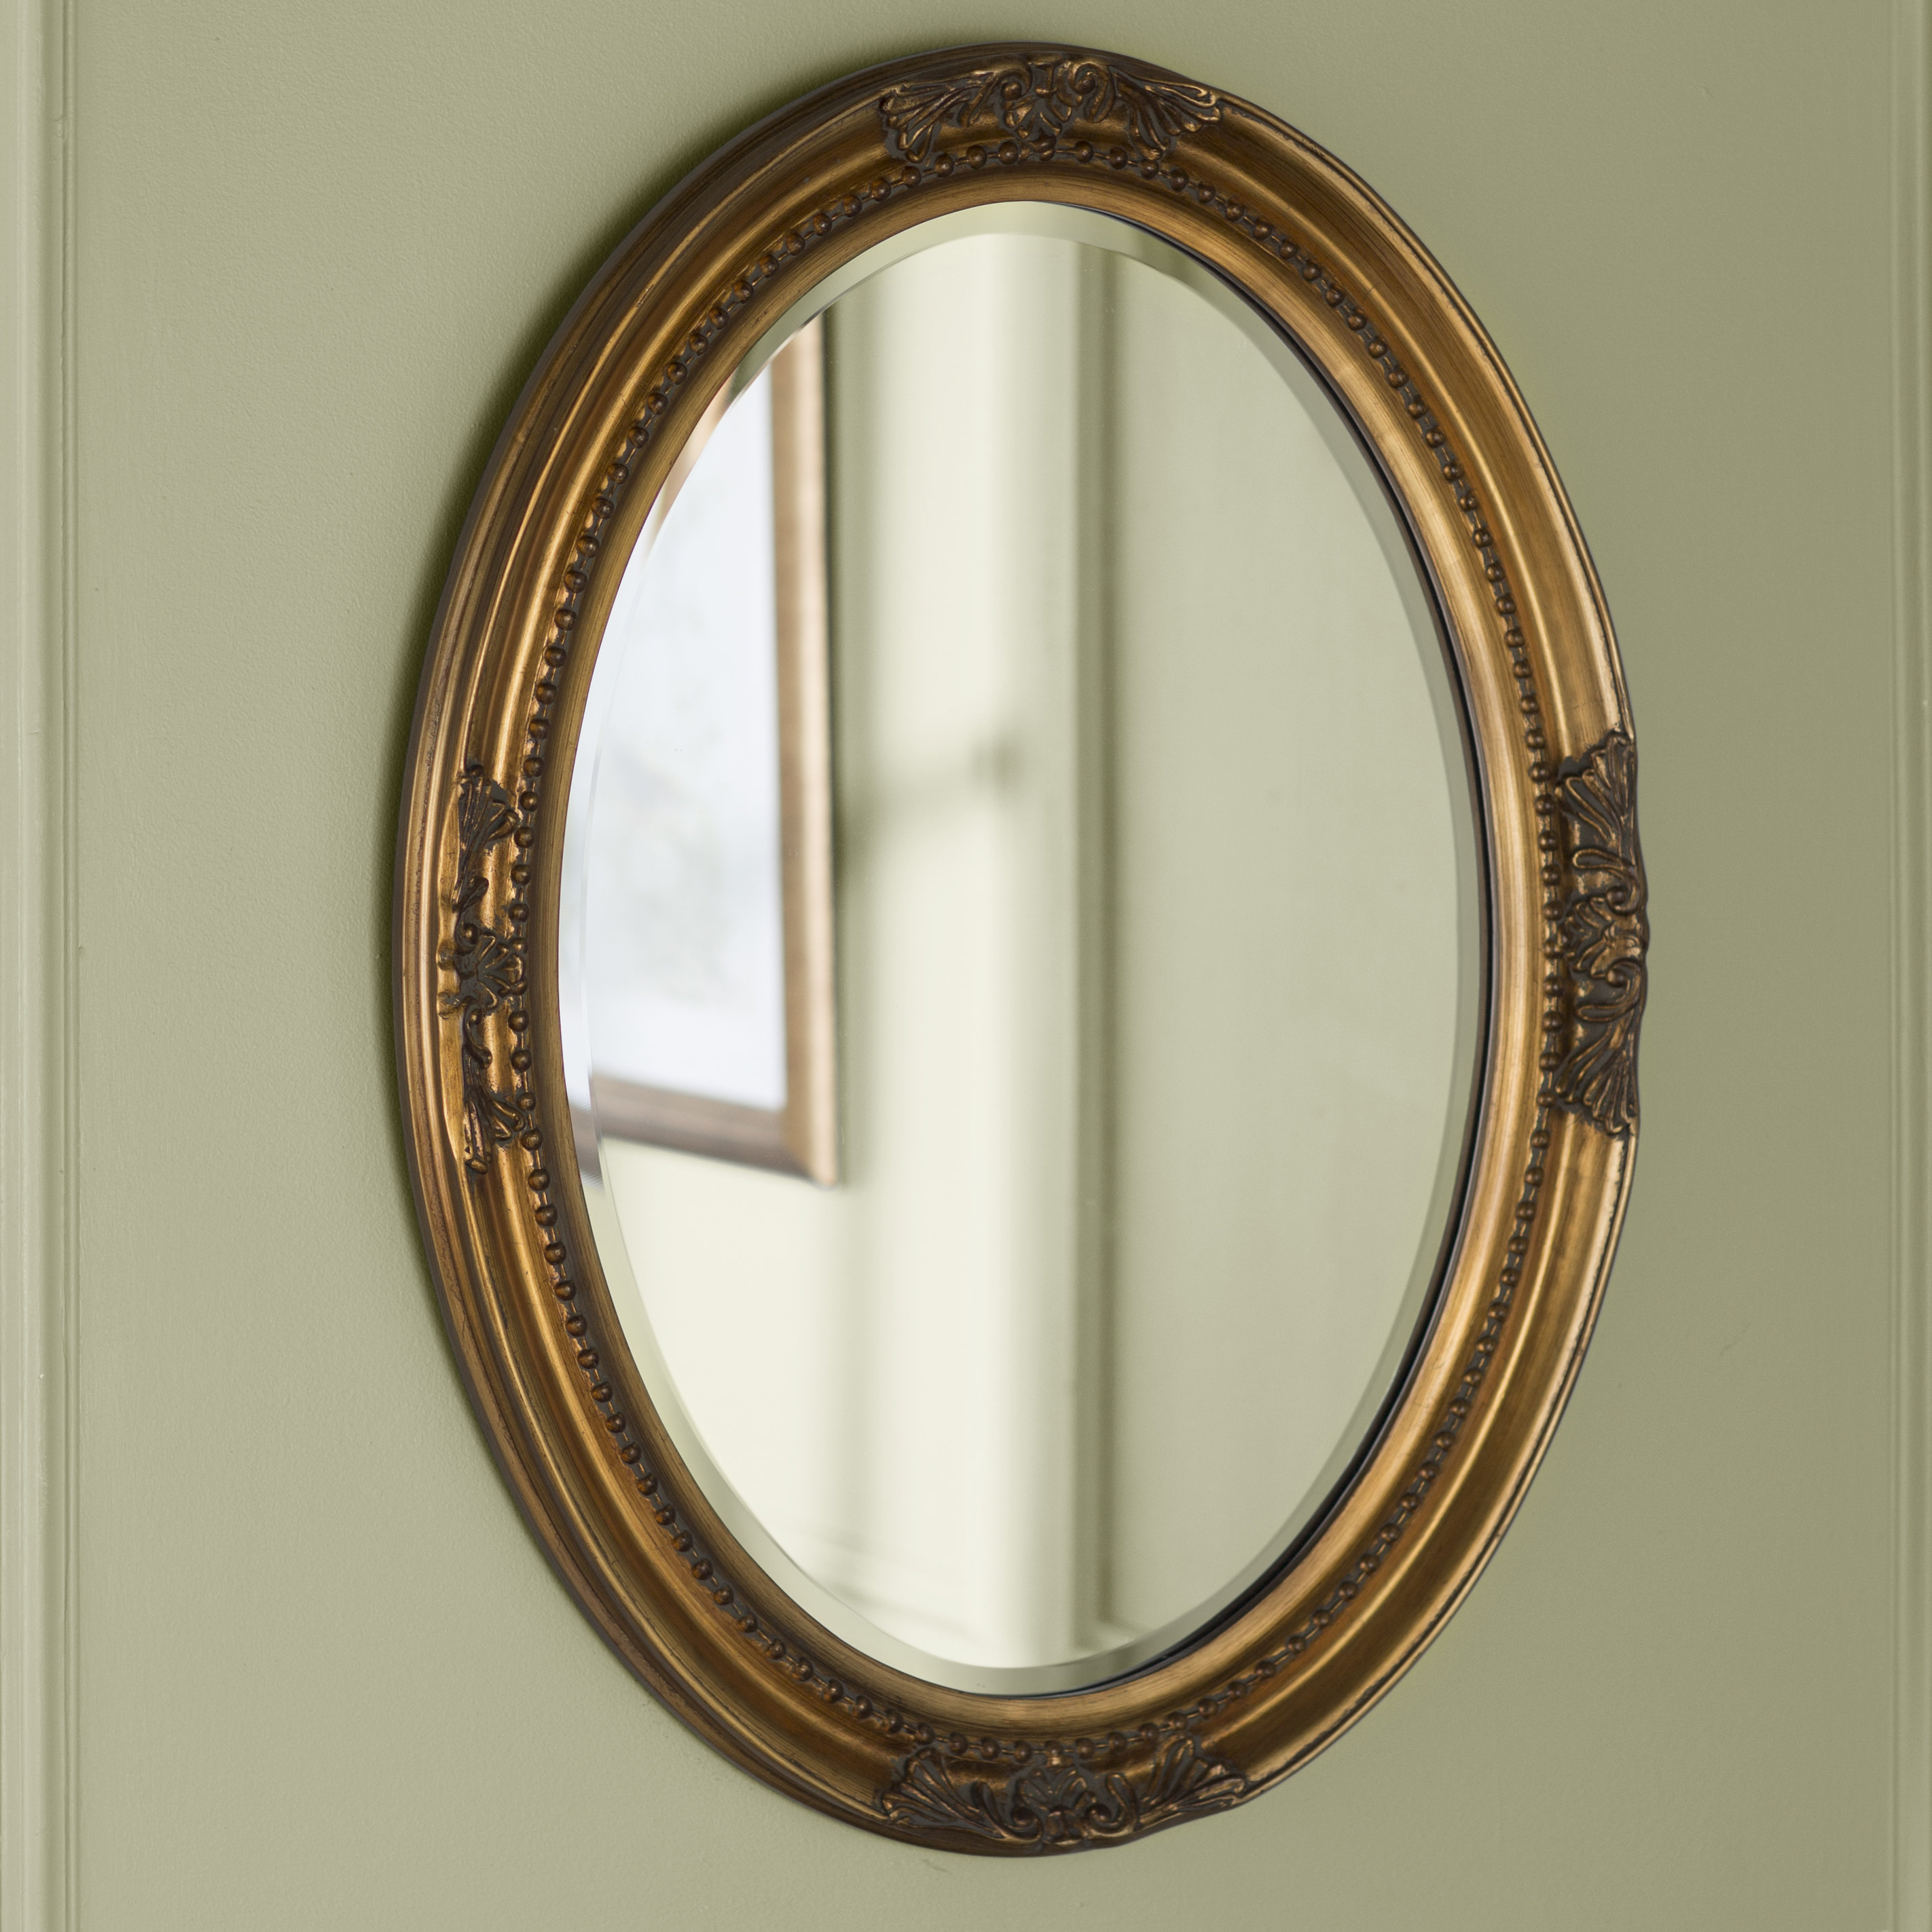 Pfister Oval Wood Wall Mirrors In Well Known Oval Wood Wall Mirror (View 4 of 20)